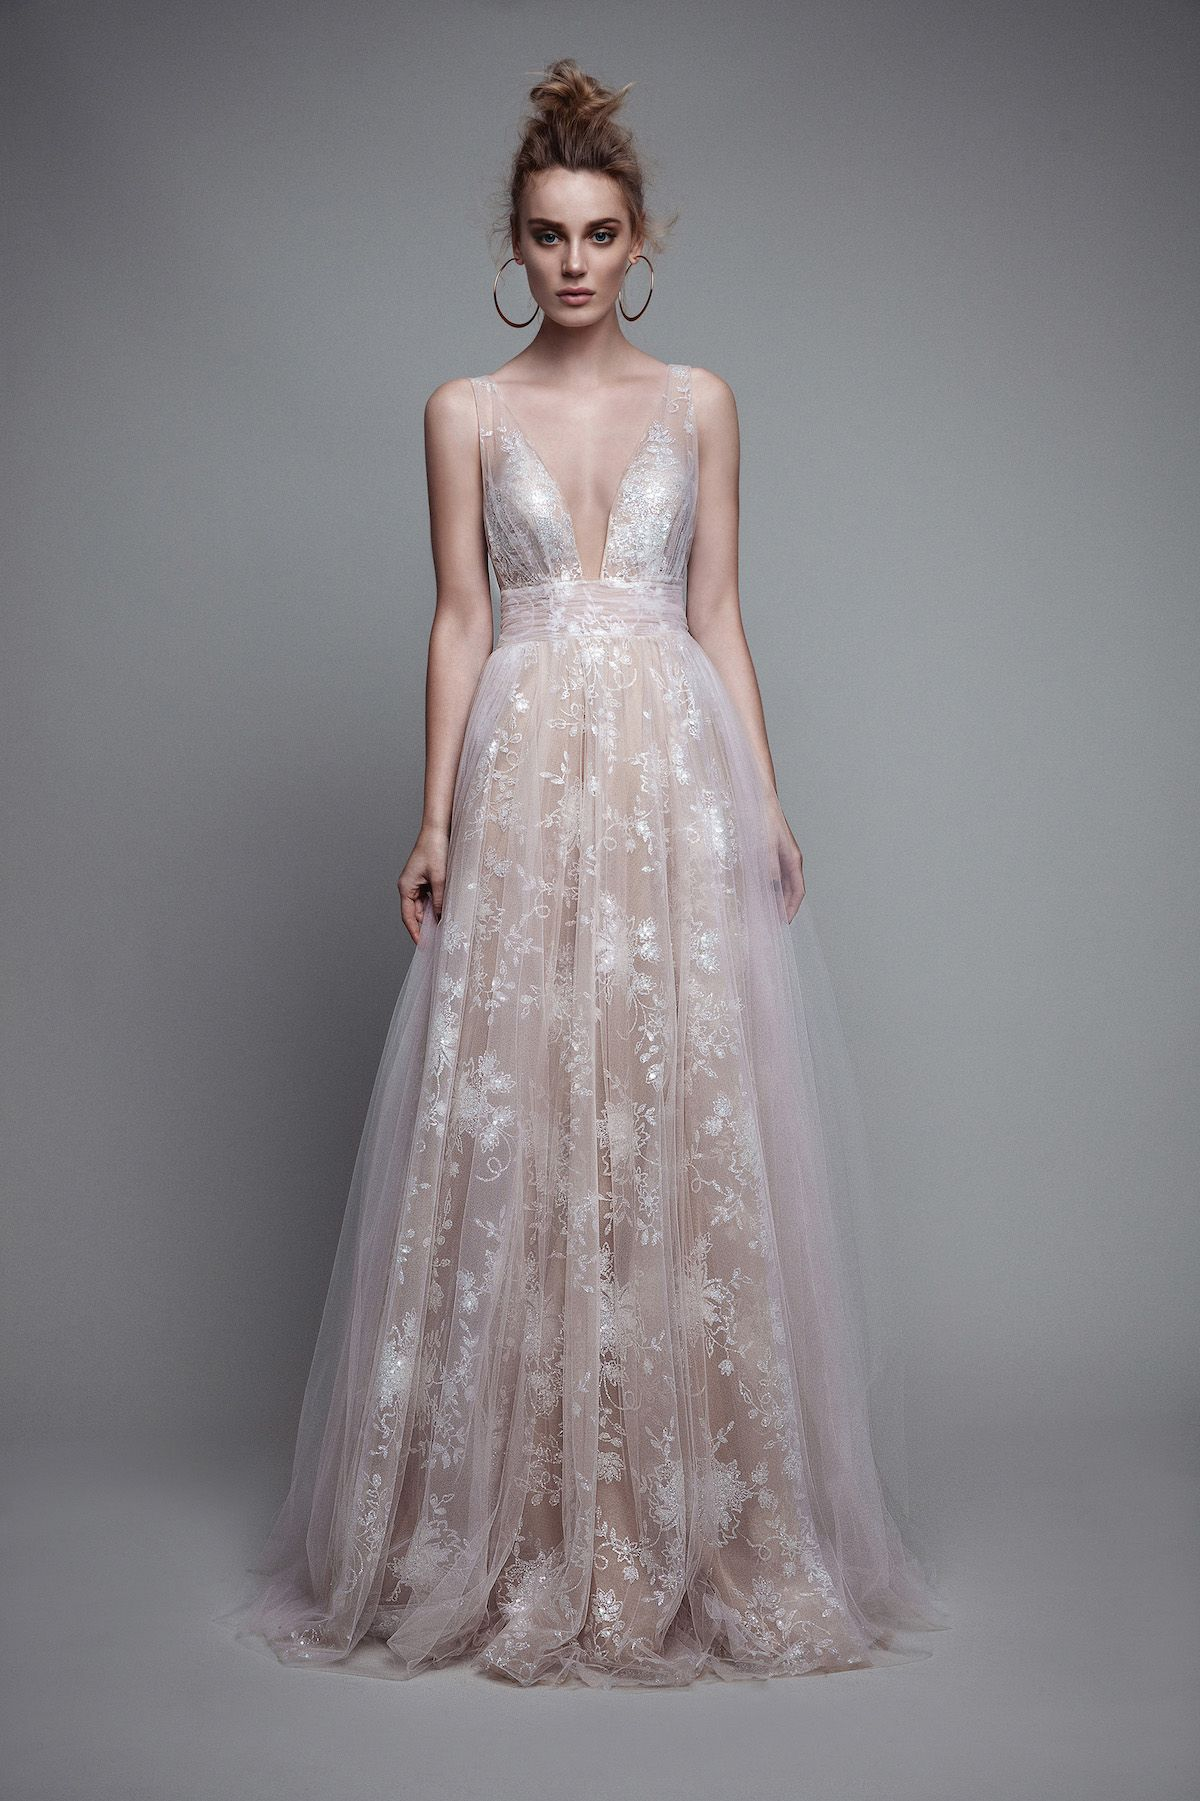 Reception Gowns   Ideas for the future   Pinterest   Reception ...